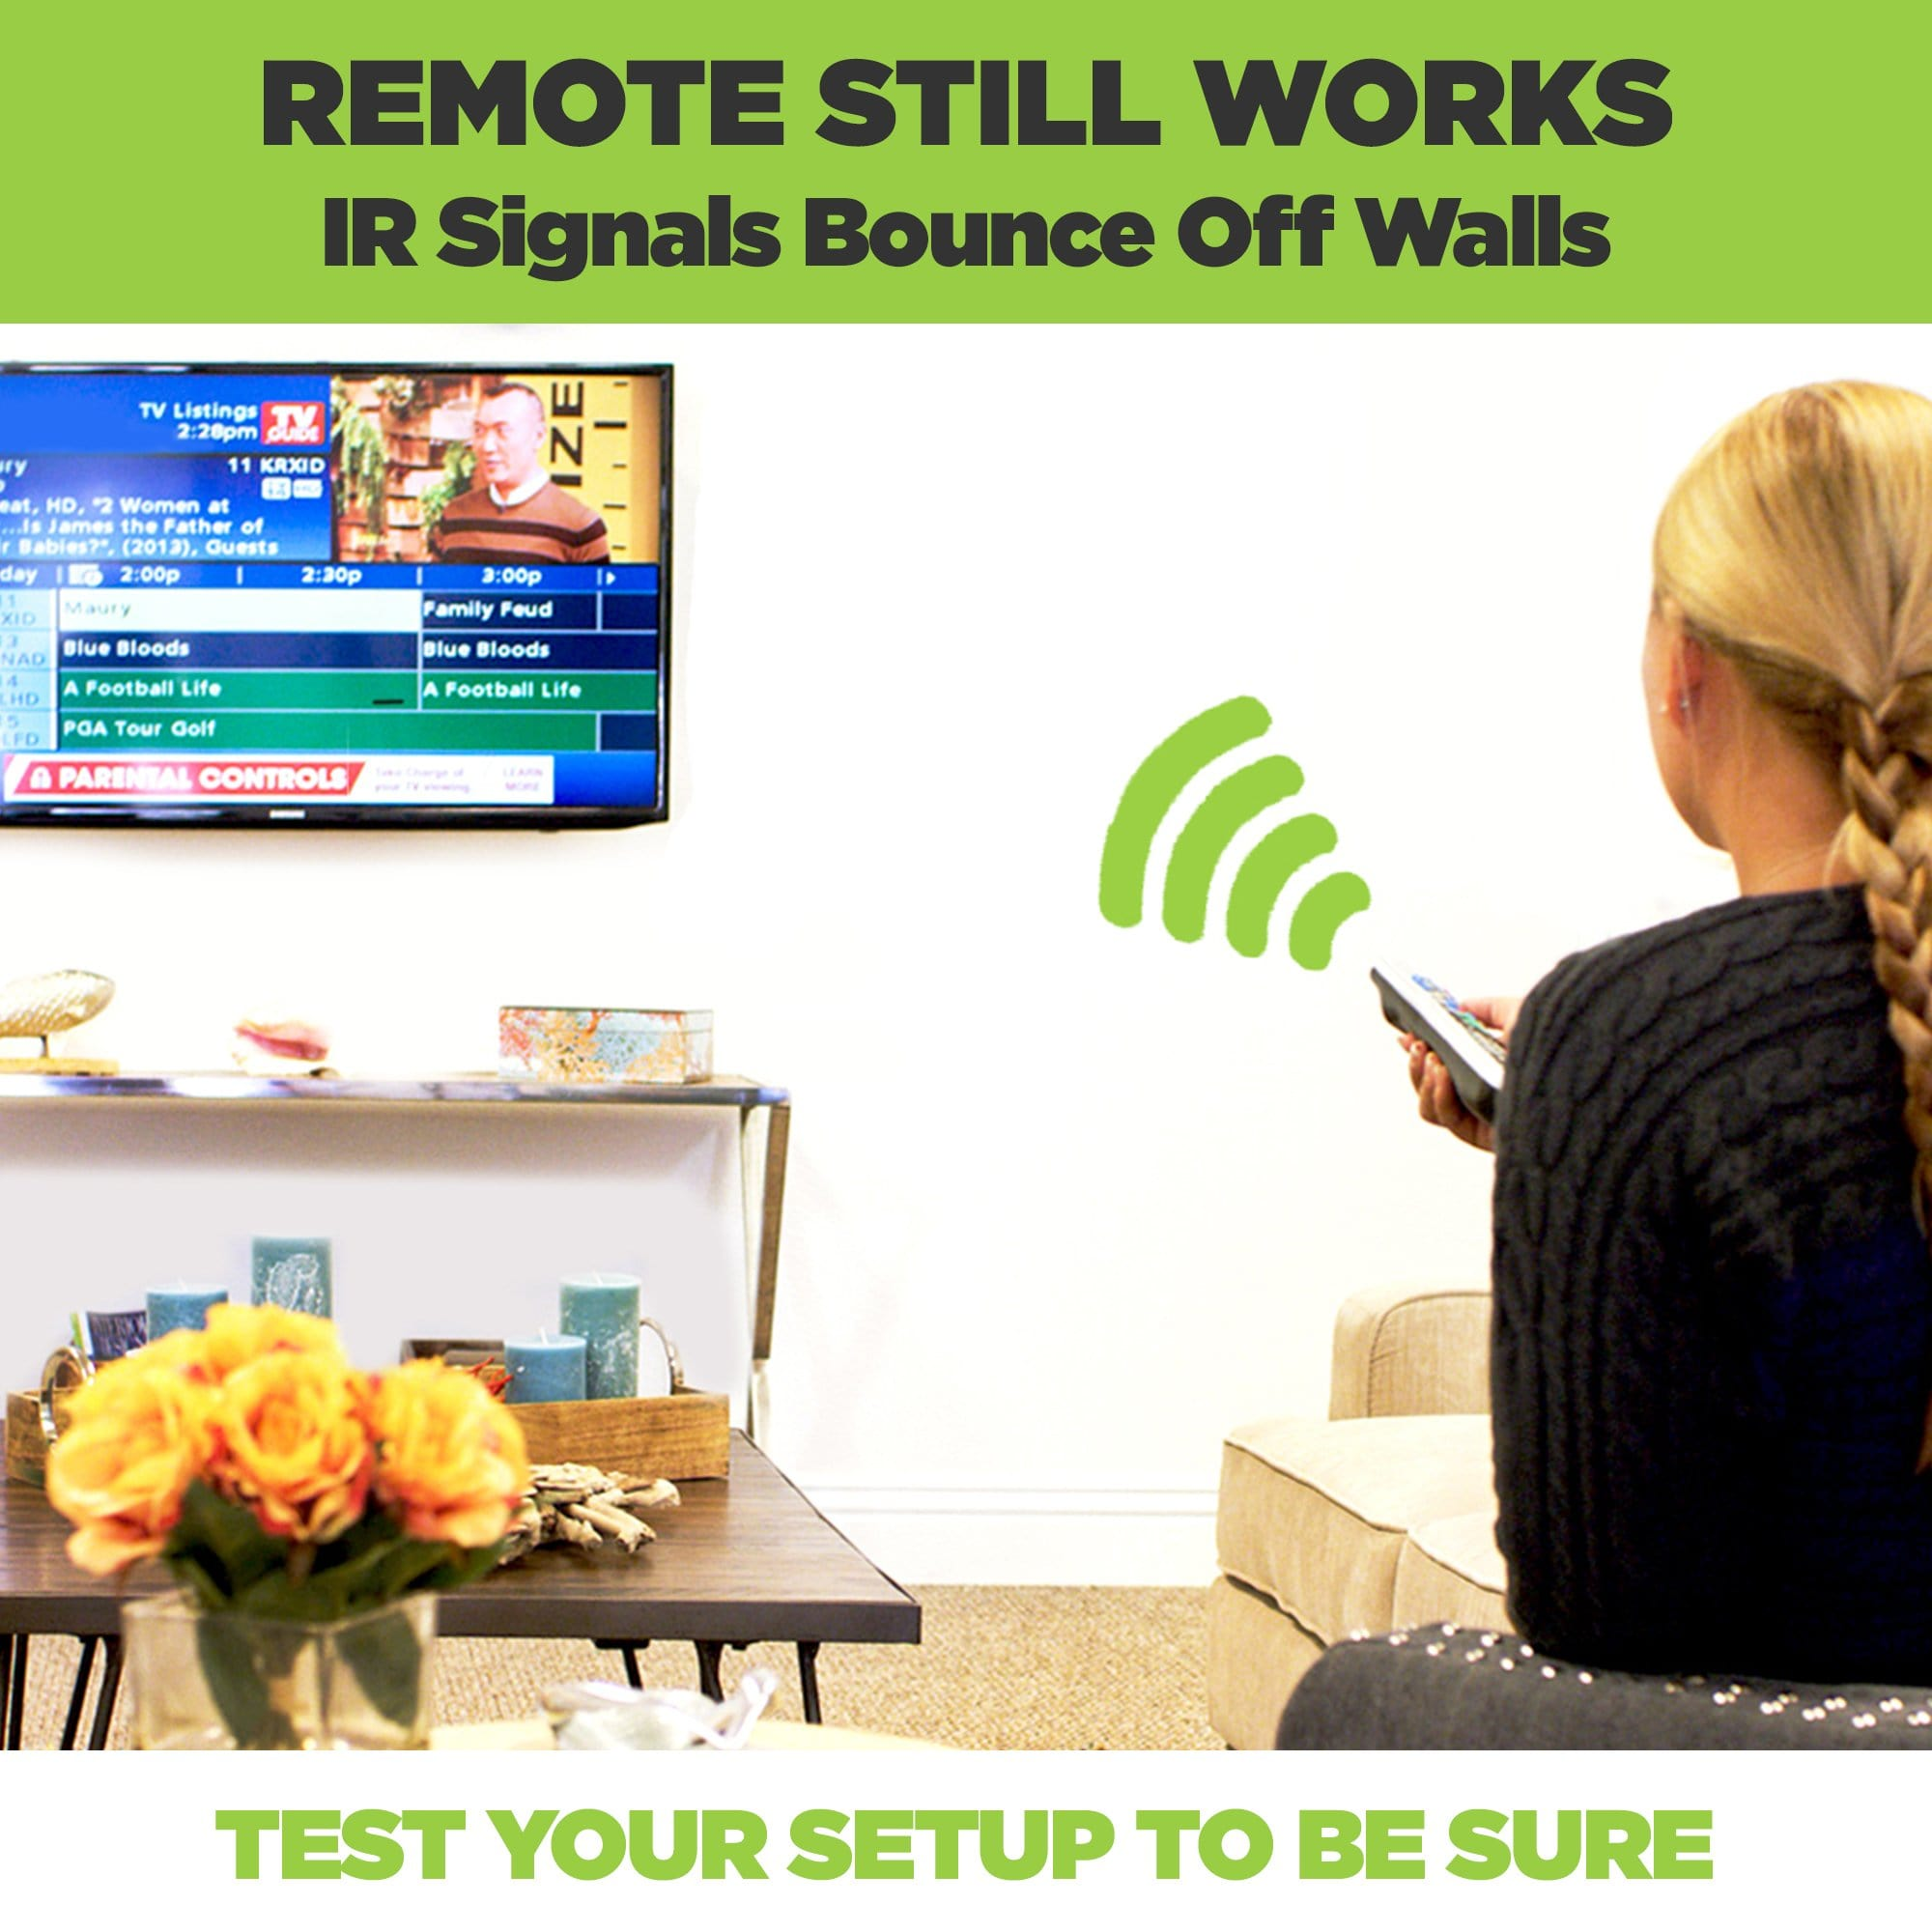 Remote still works with cable box mounted behind the wall mounted TV.